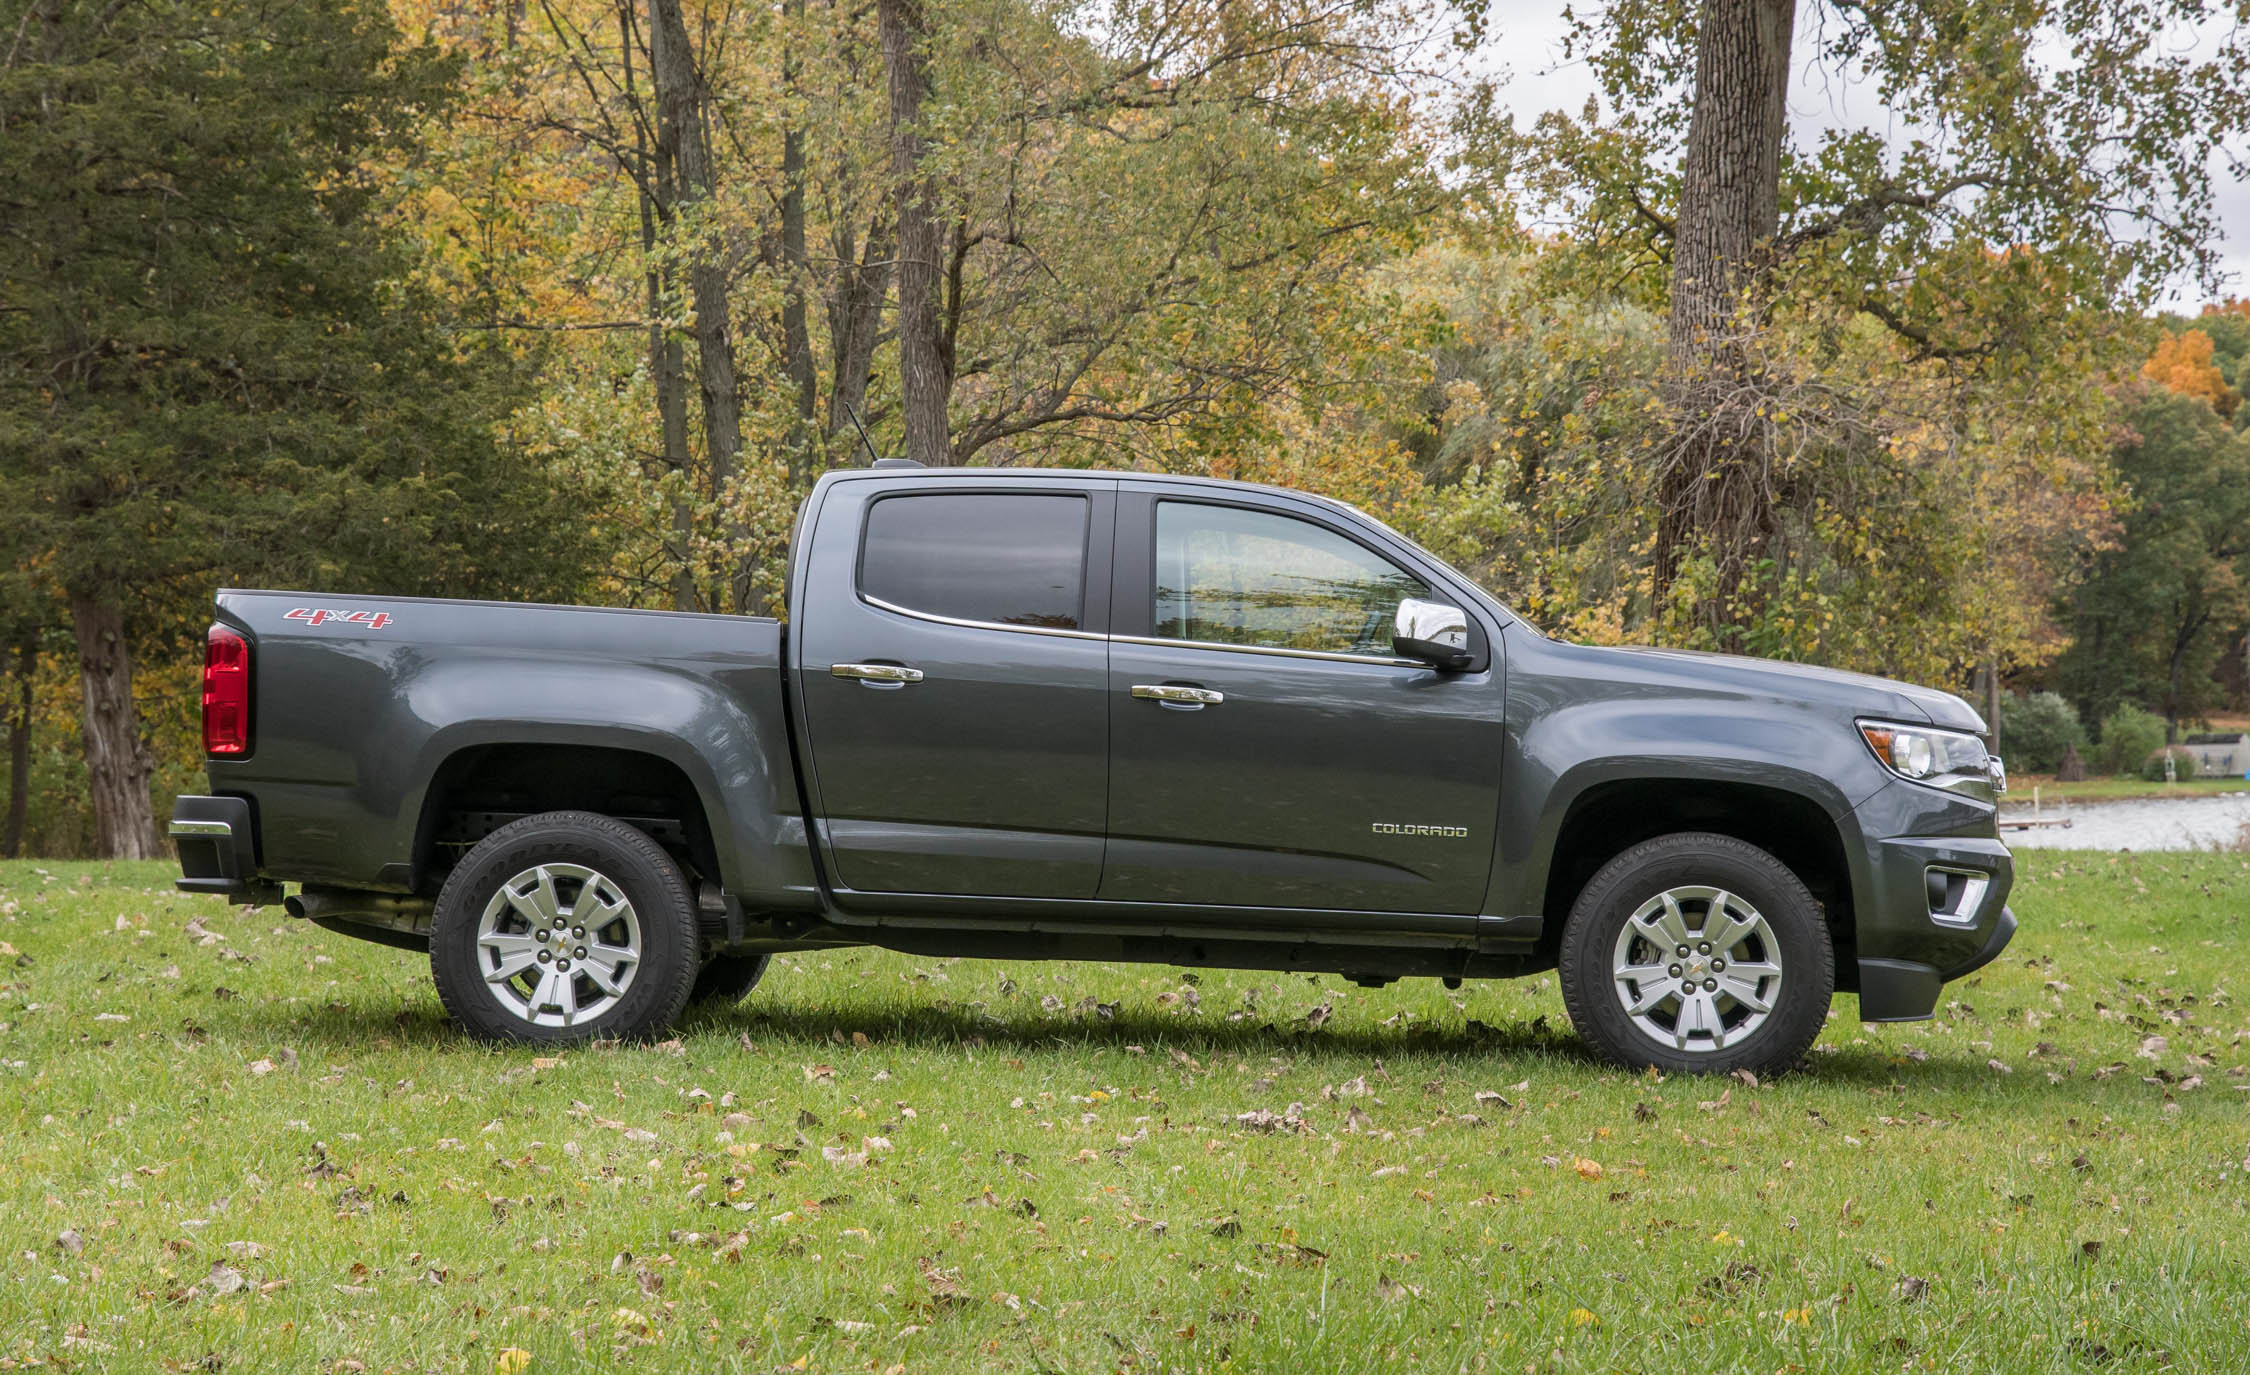 2017 Chevrolet Colorado LT Exterior Side (View 20 of 41)